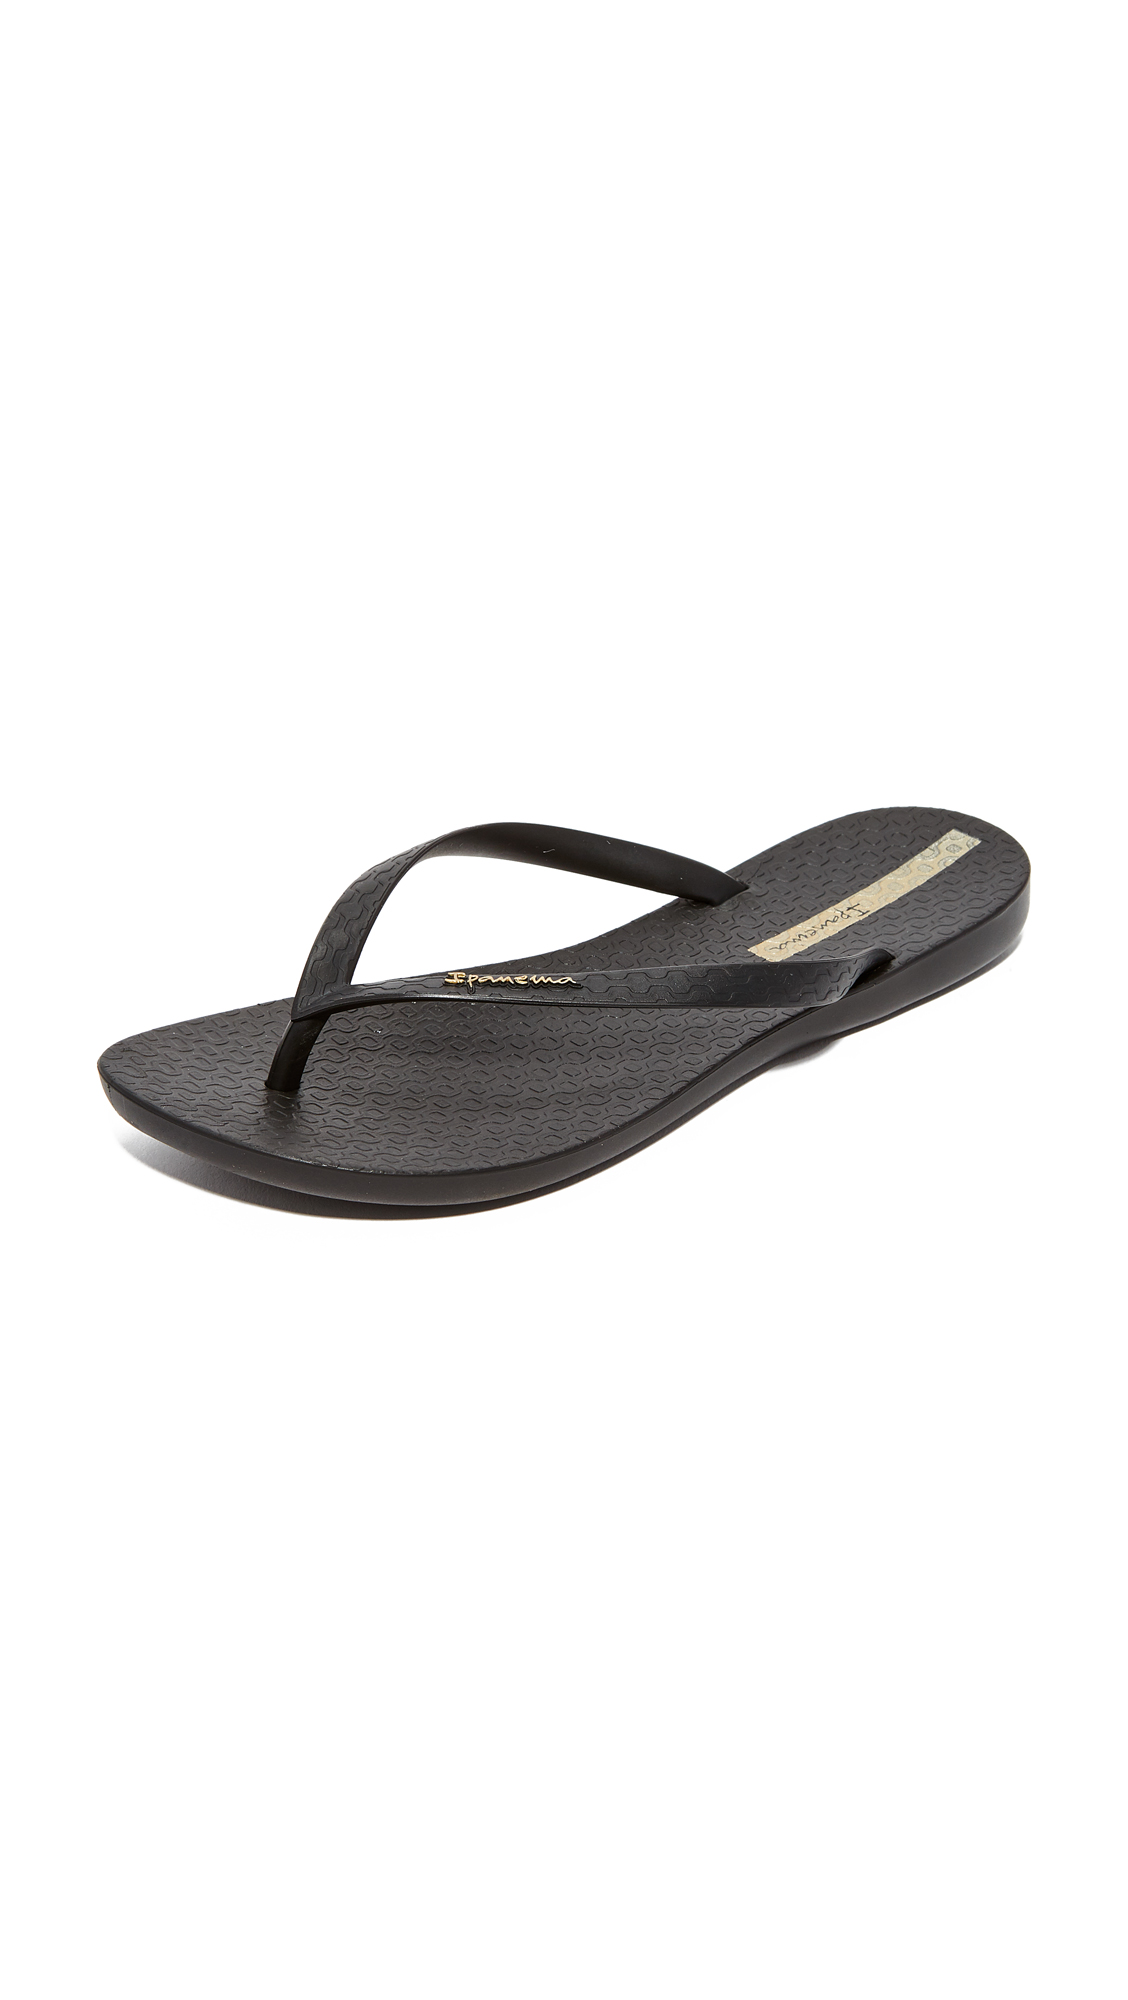 Ipanema Wave Essence Flip Flops - Black